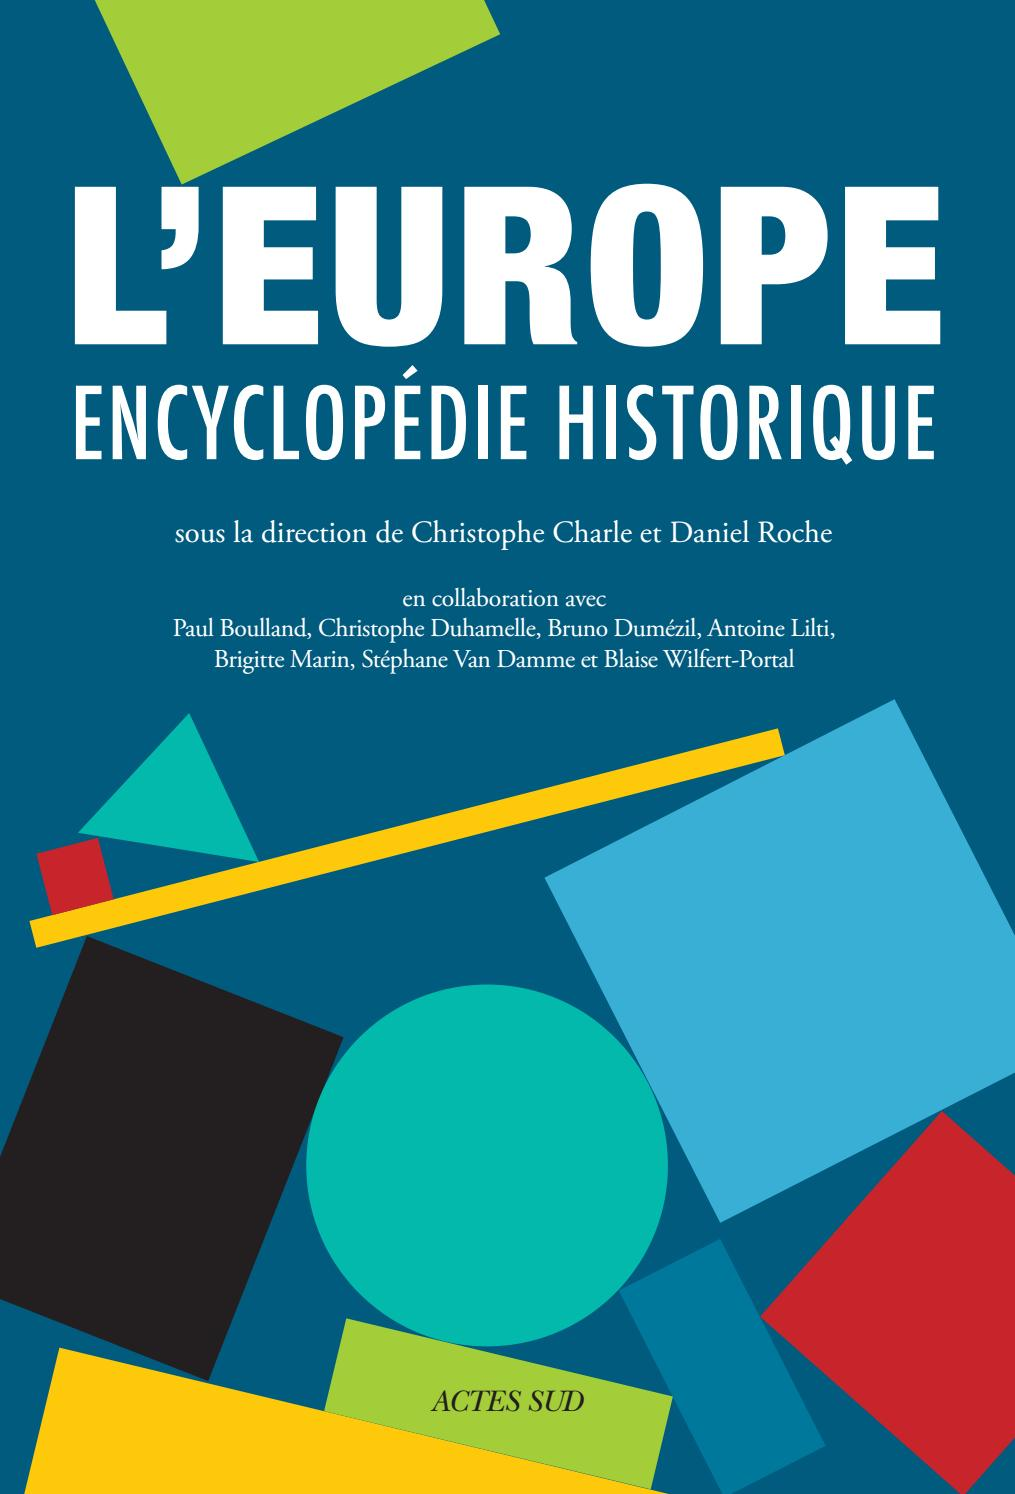 Extrait L Europe Encyclopedie Historique By Actes Sud Issuu Issuu